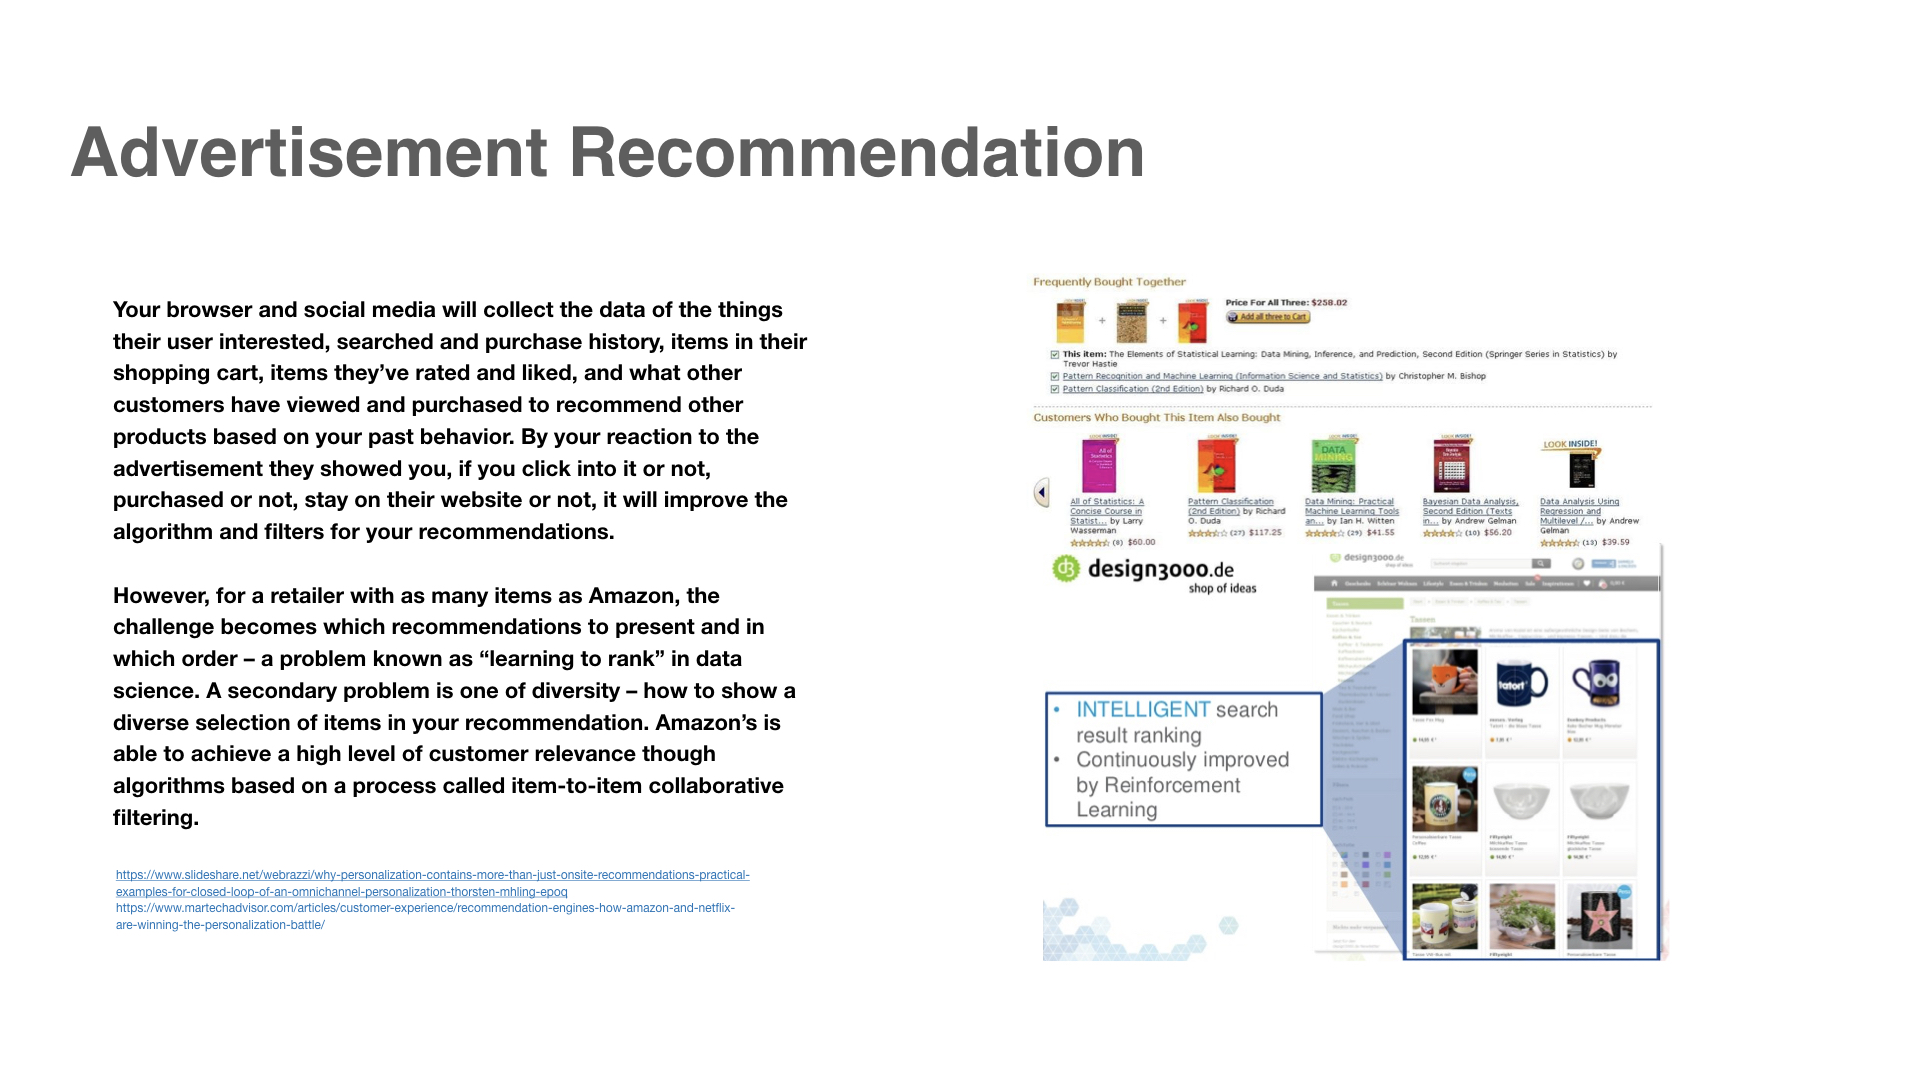 Reinforcement Learning .012.jpeg